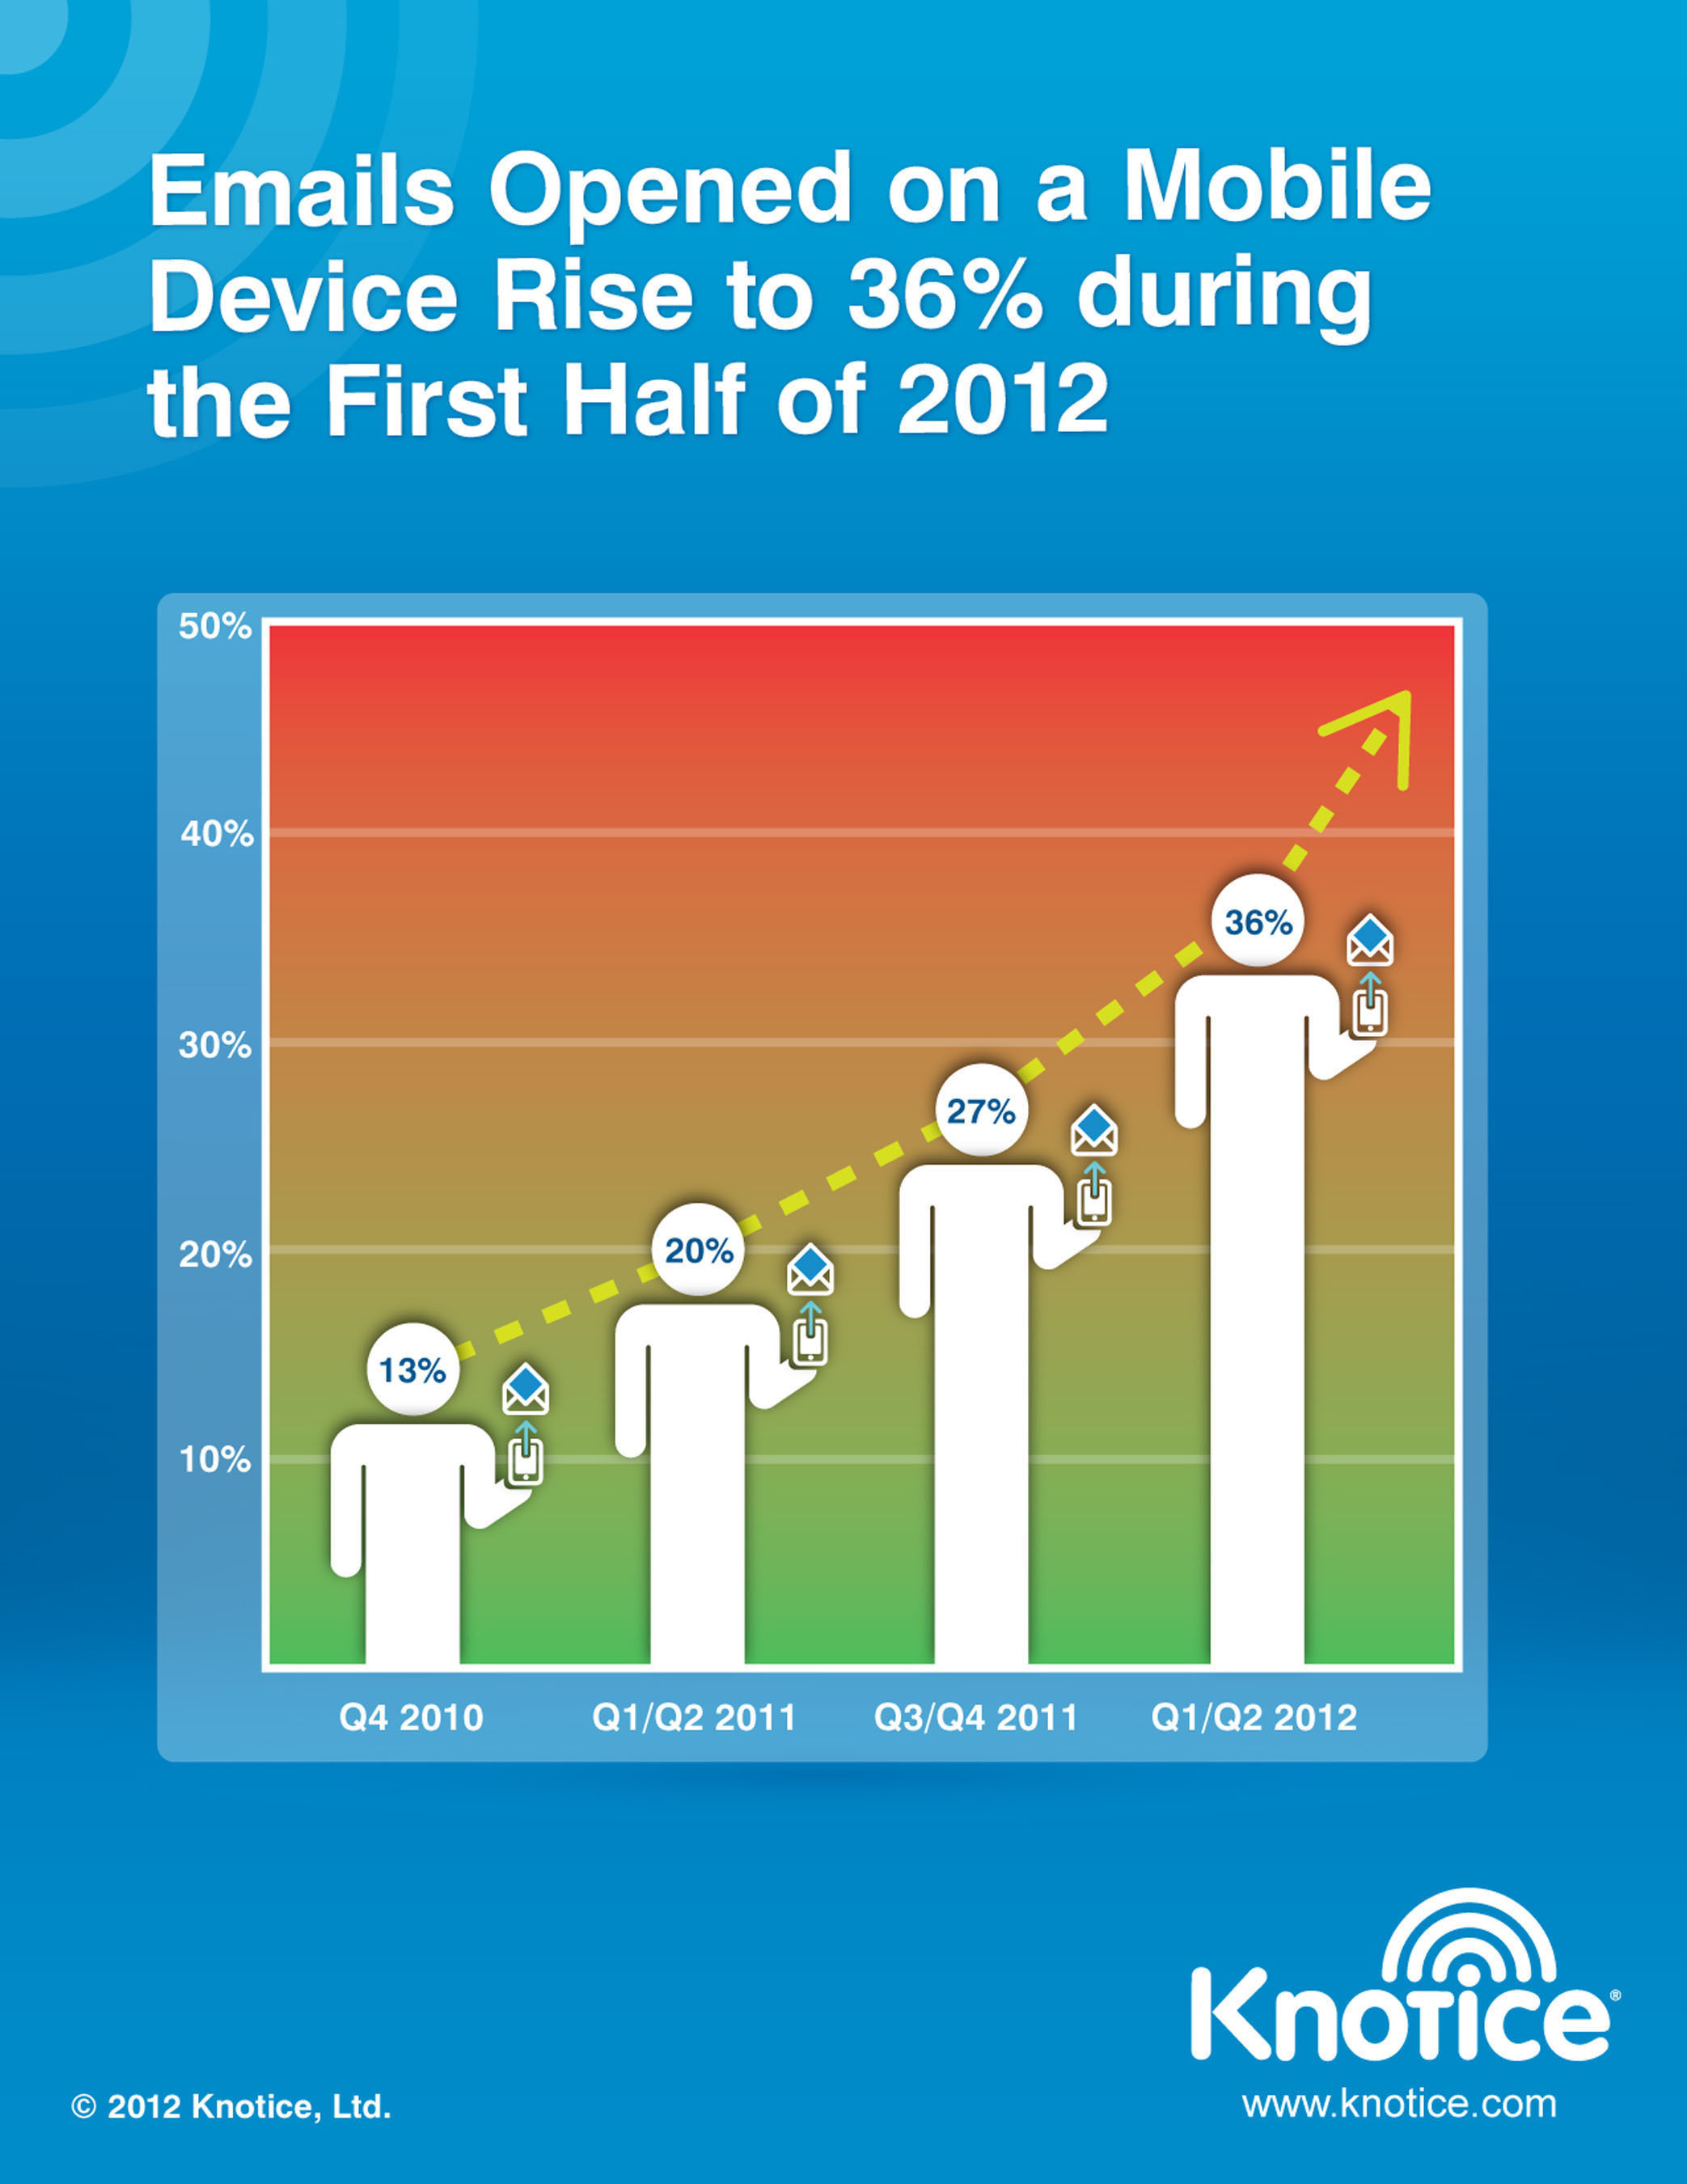 Knotice Releases Mobile Email Opens Report for First Half of 2012